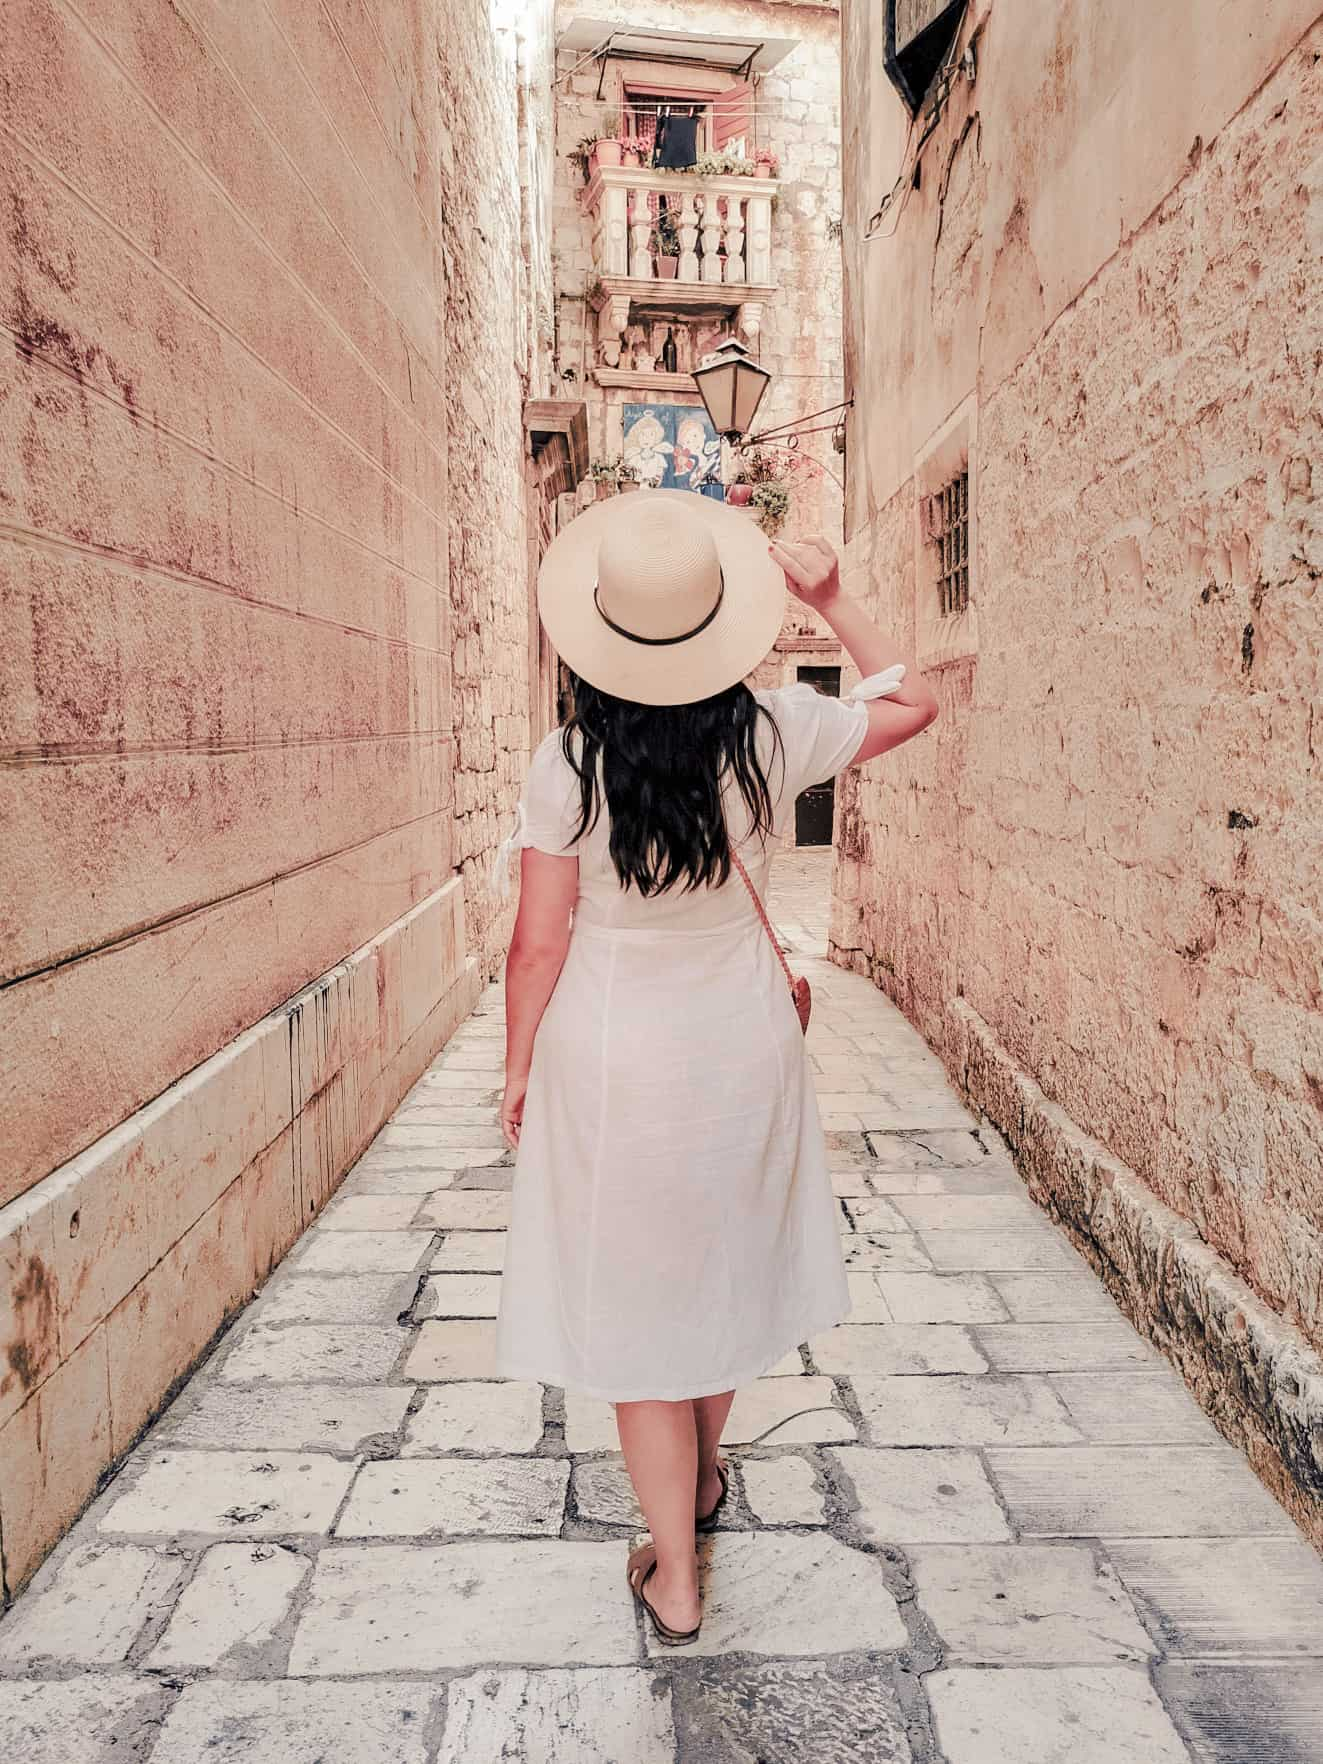 rear-view-of-stylish-young-woman-wearing-sun-hat-and-white-summer-style-dress-walking-on-stone-paved_t20_NlV9XN